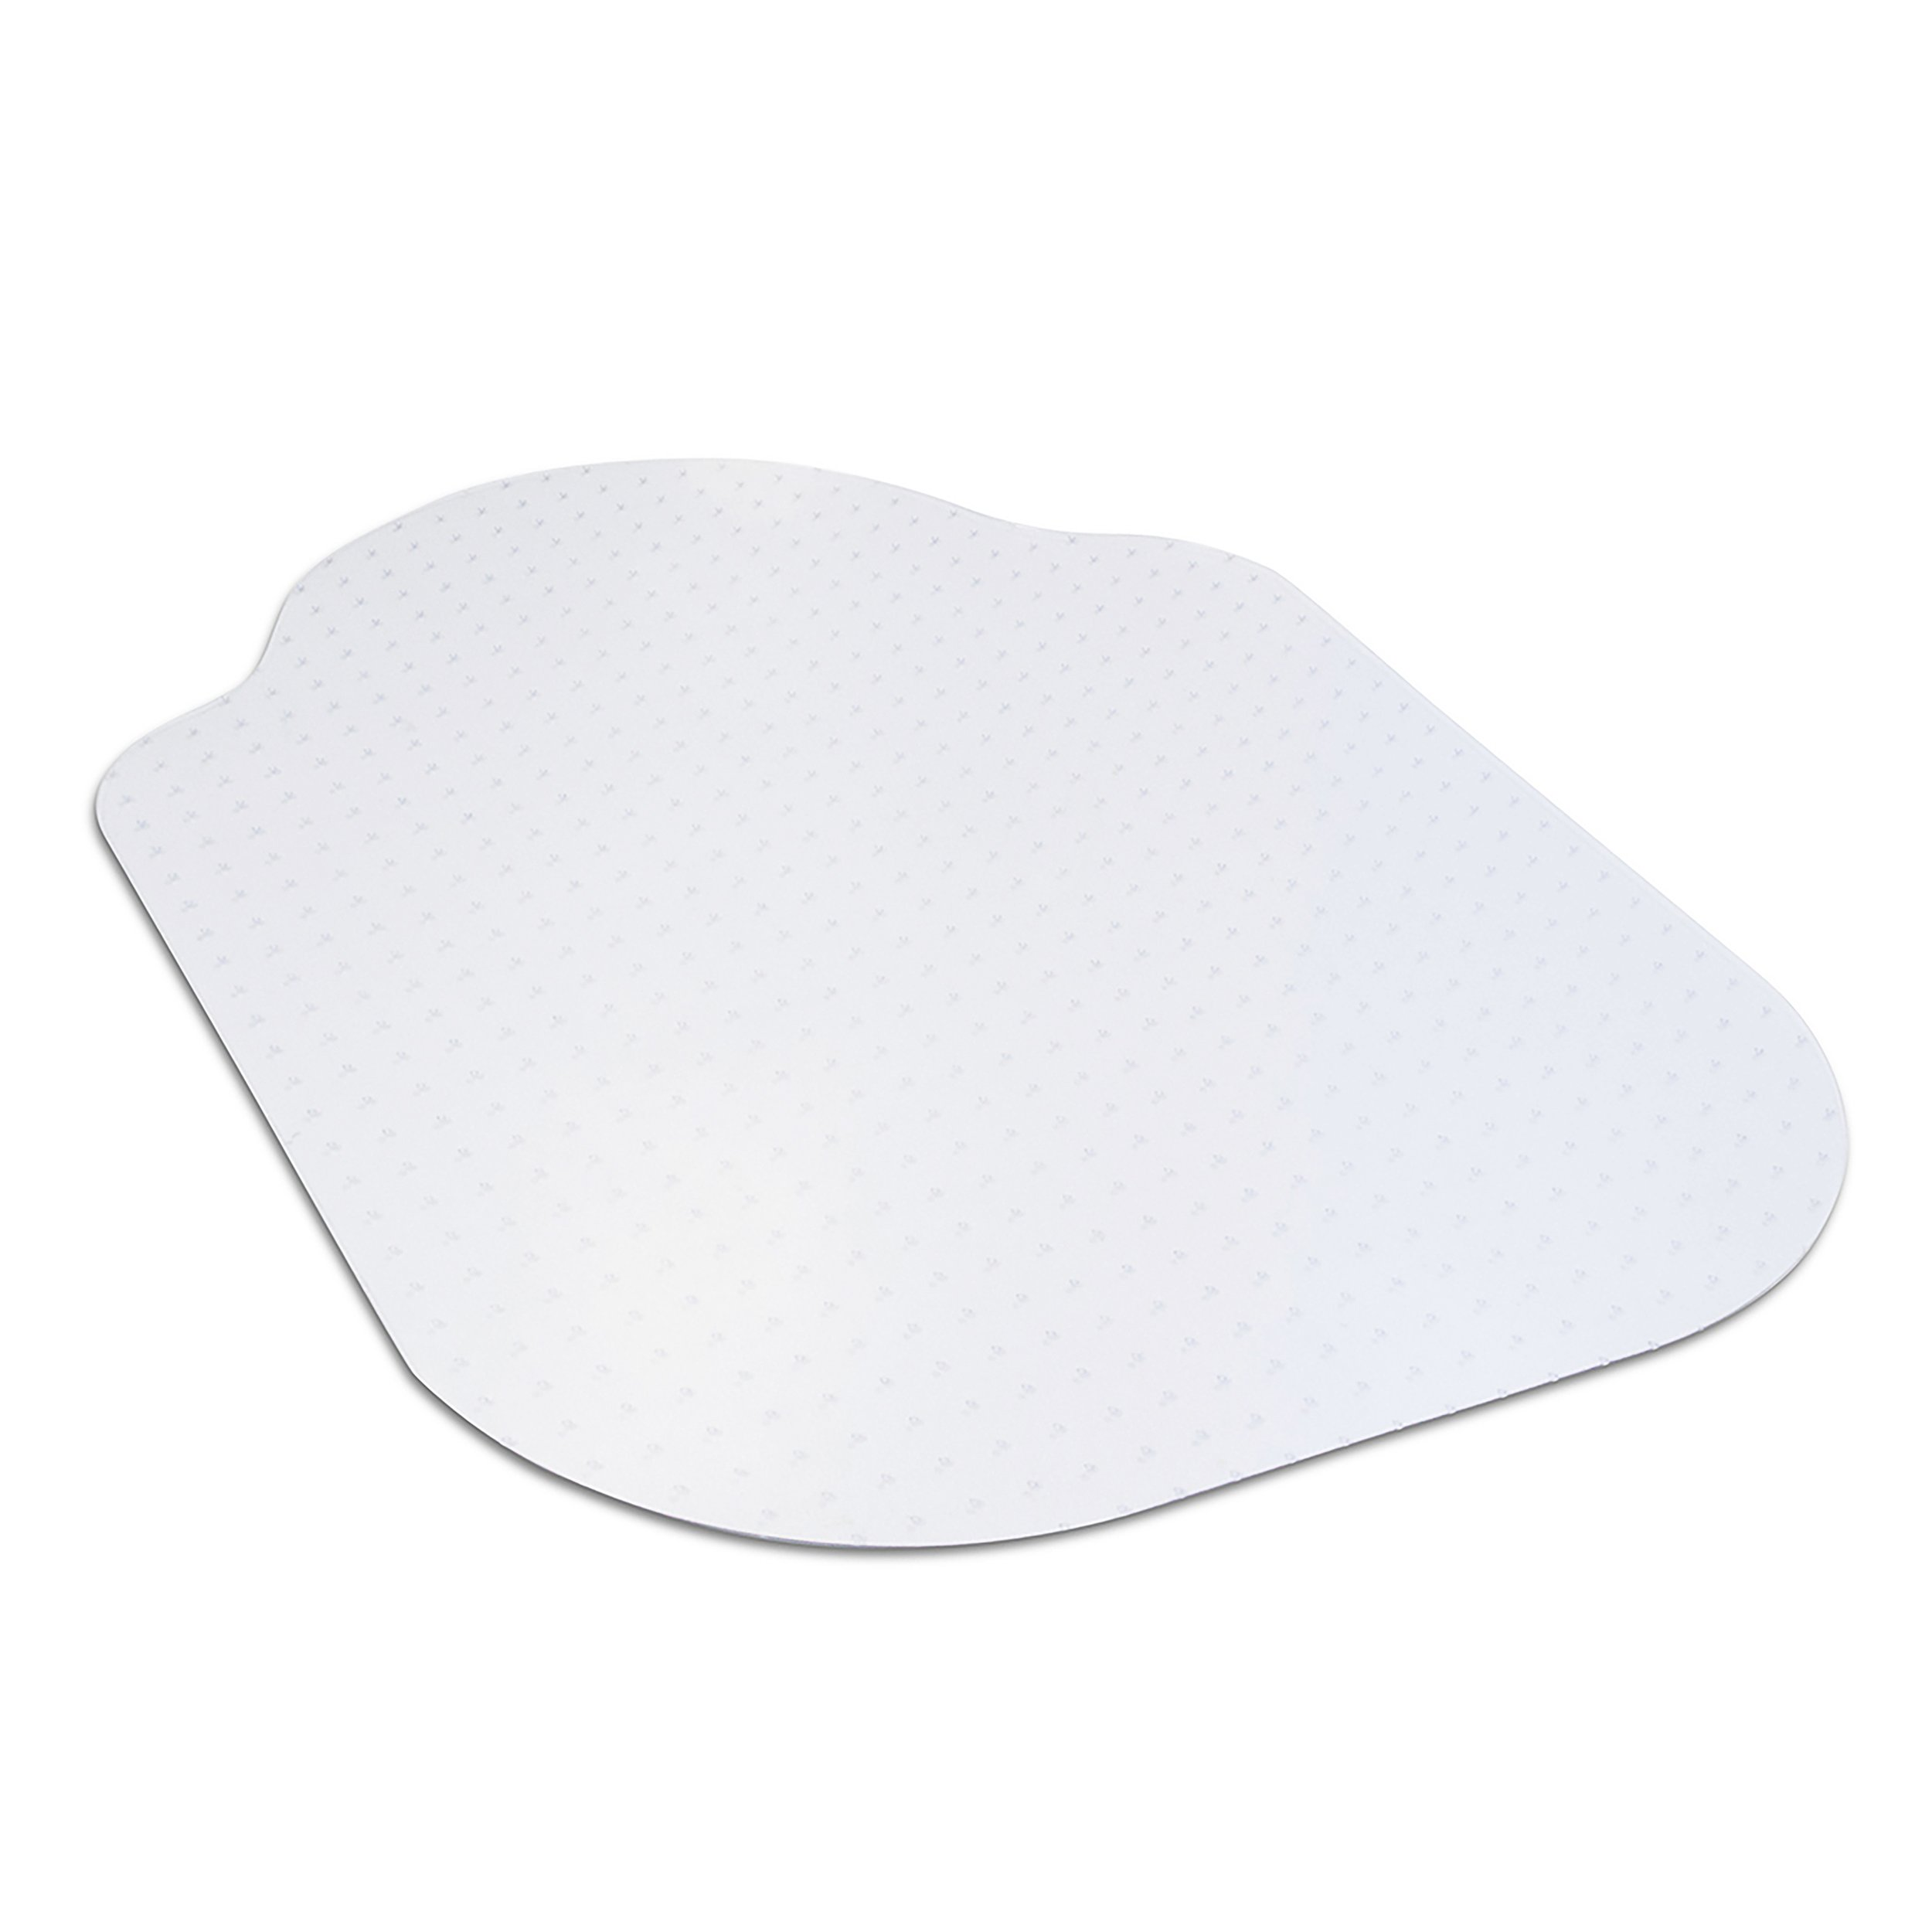 Evolve Modern Shape 33'' x 44'' Clear Office Chair Mat with Lip for Low Pile Carpet, Made in The USA by Dimex, Phthalate Free (C5B5003G) by EVOLVE